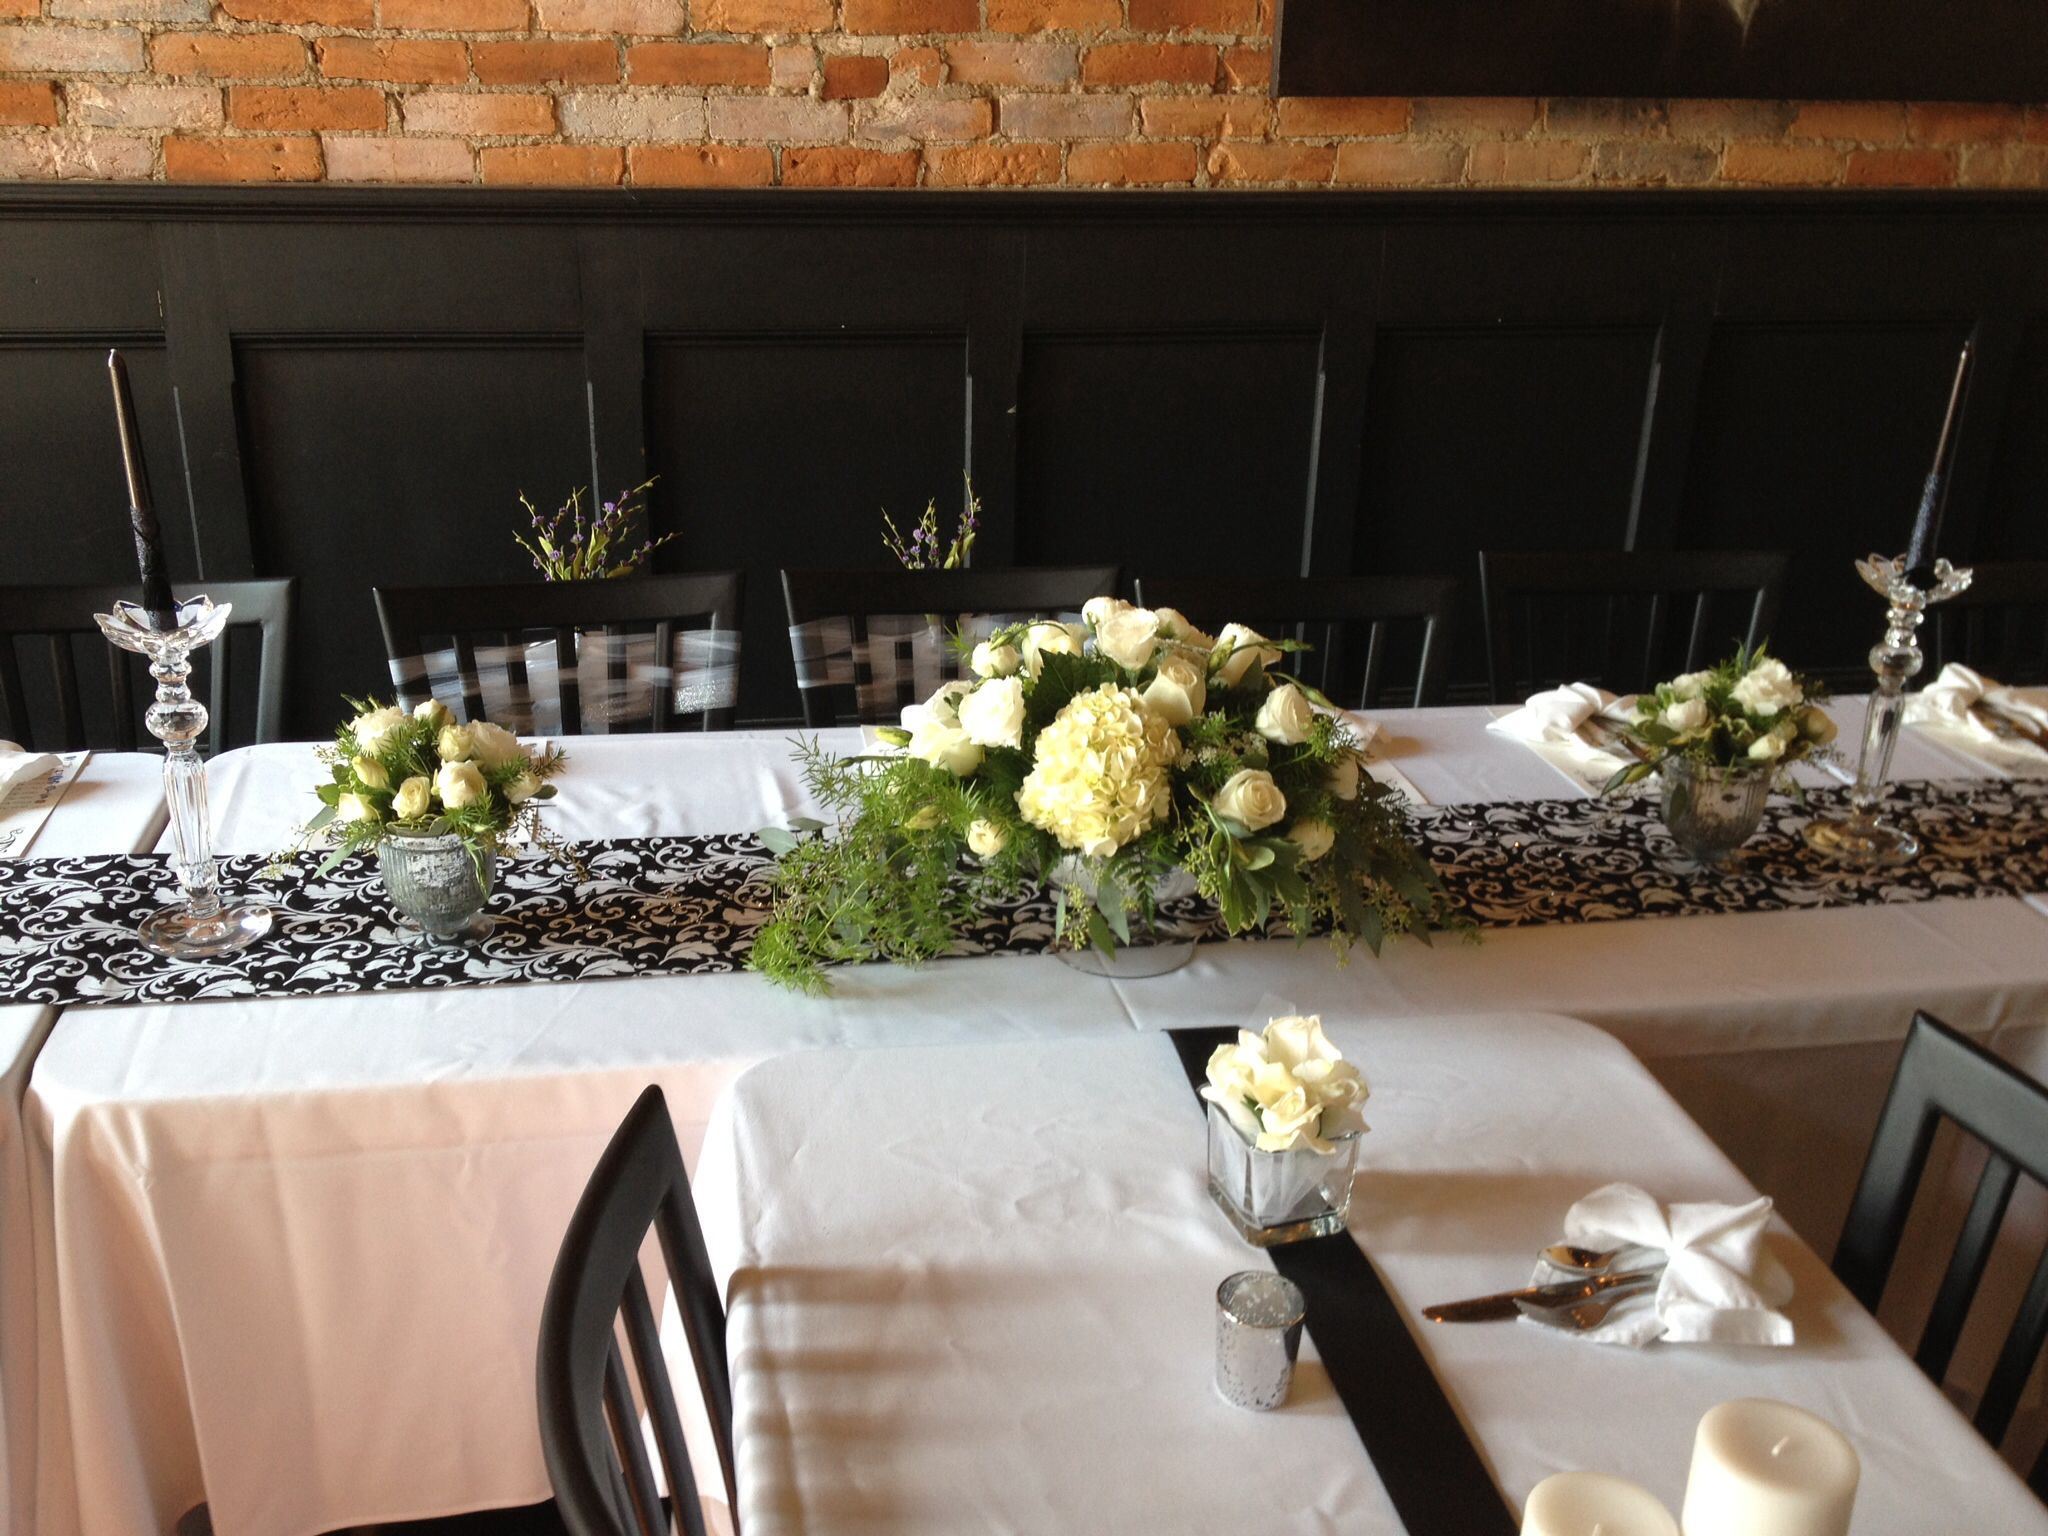 dress rehearsal dinner table decor ideas nate sarah 39 s